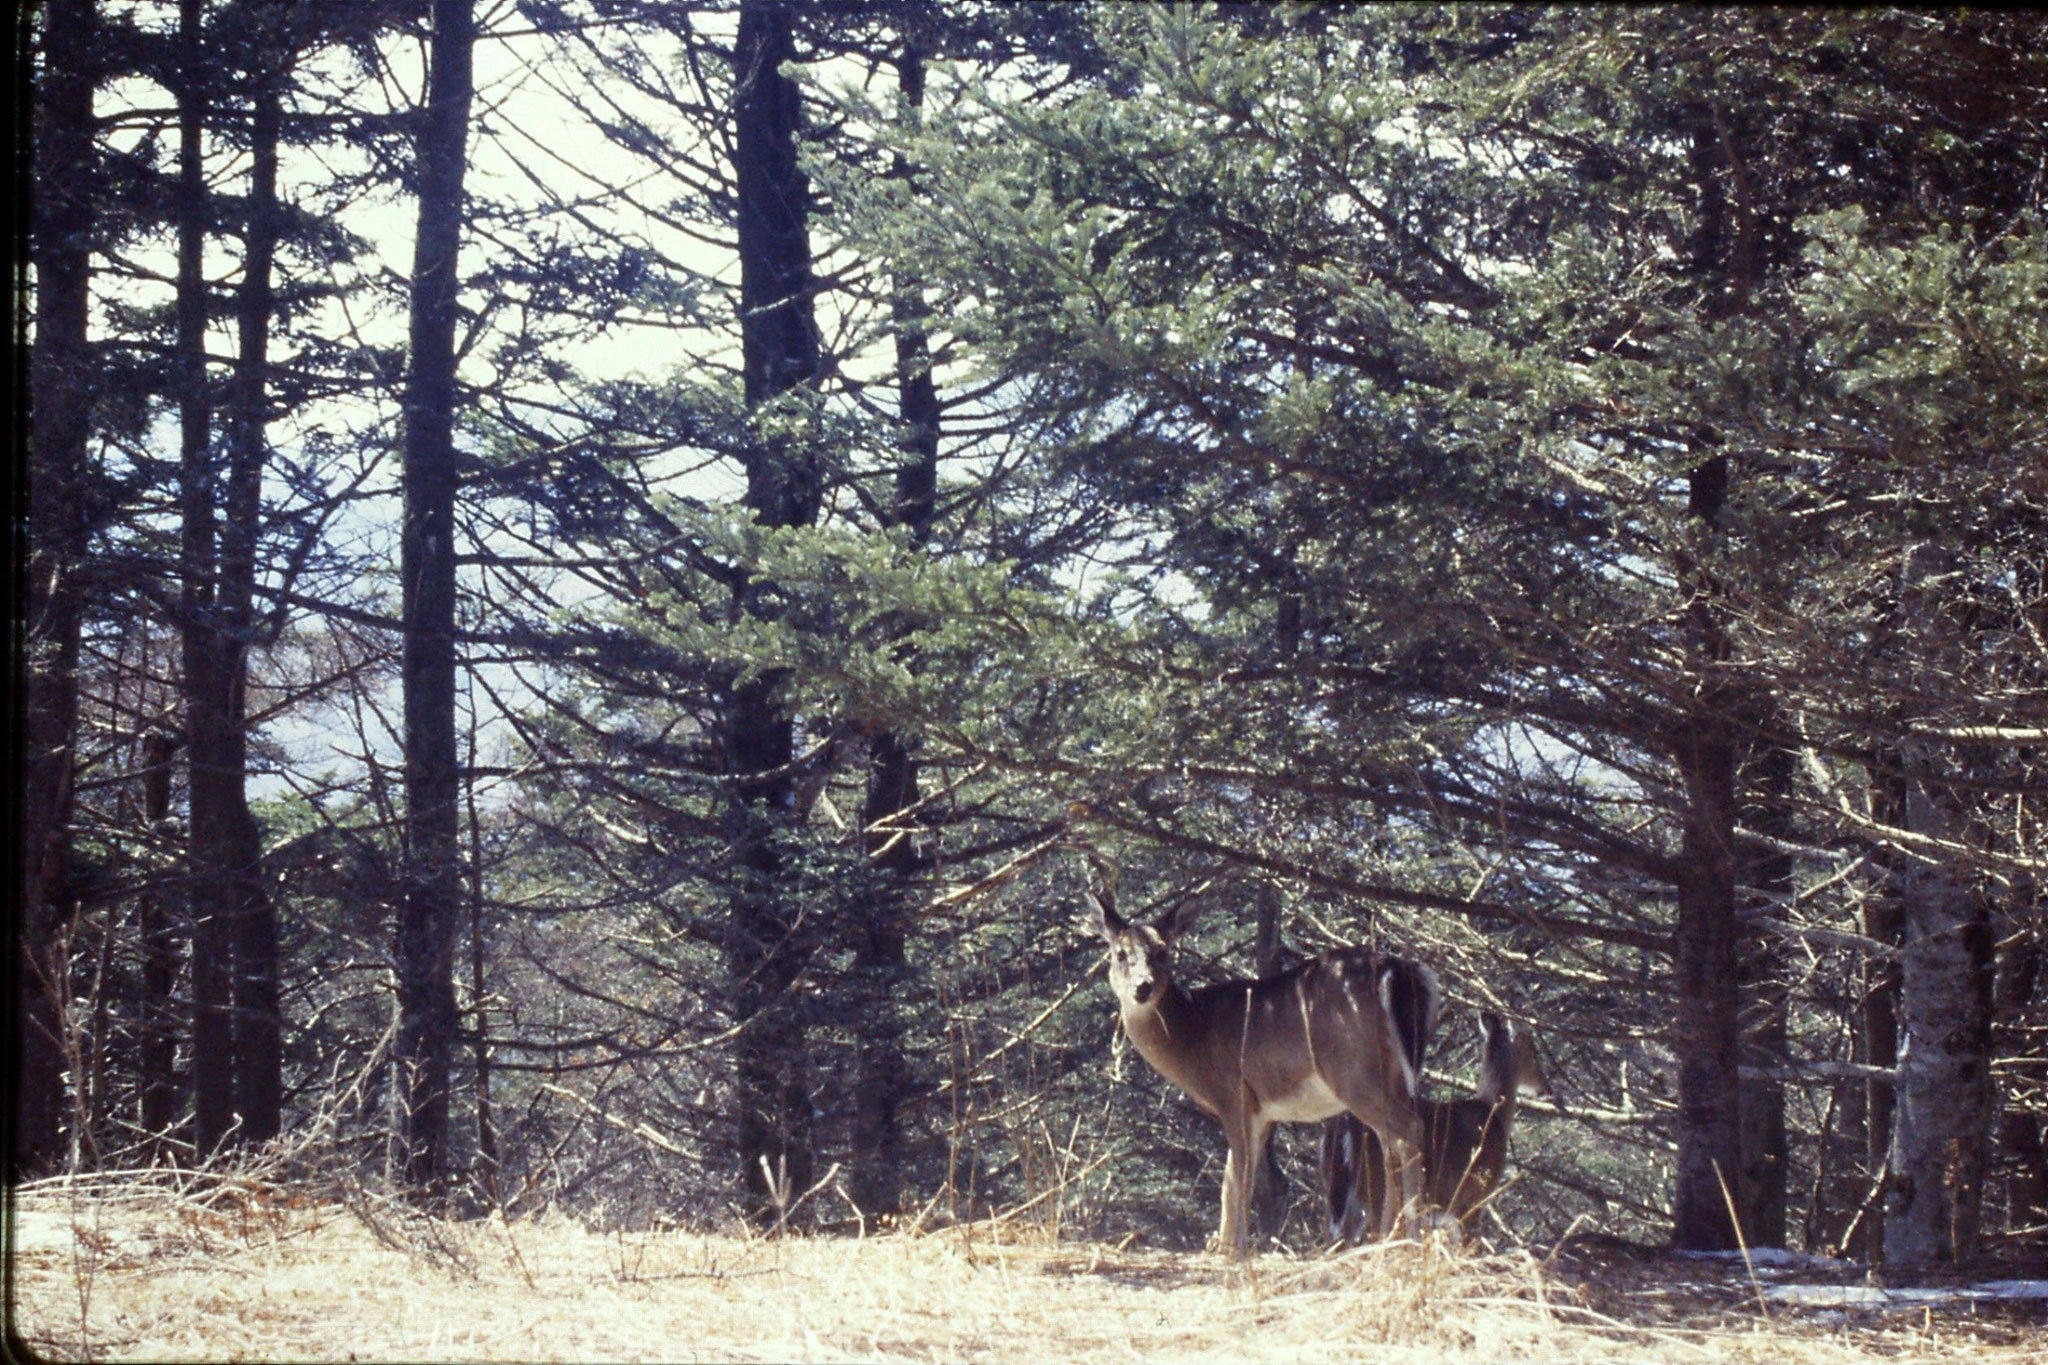 16/3/1991: 19: Mt Mitchell N.C. white tailed deer